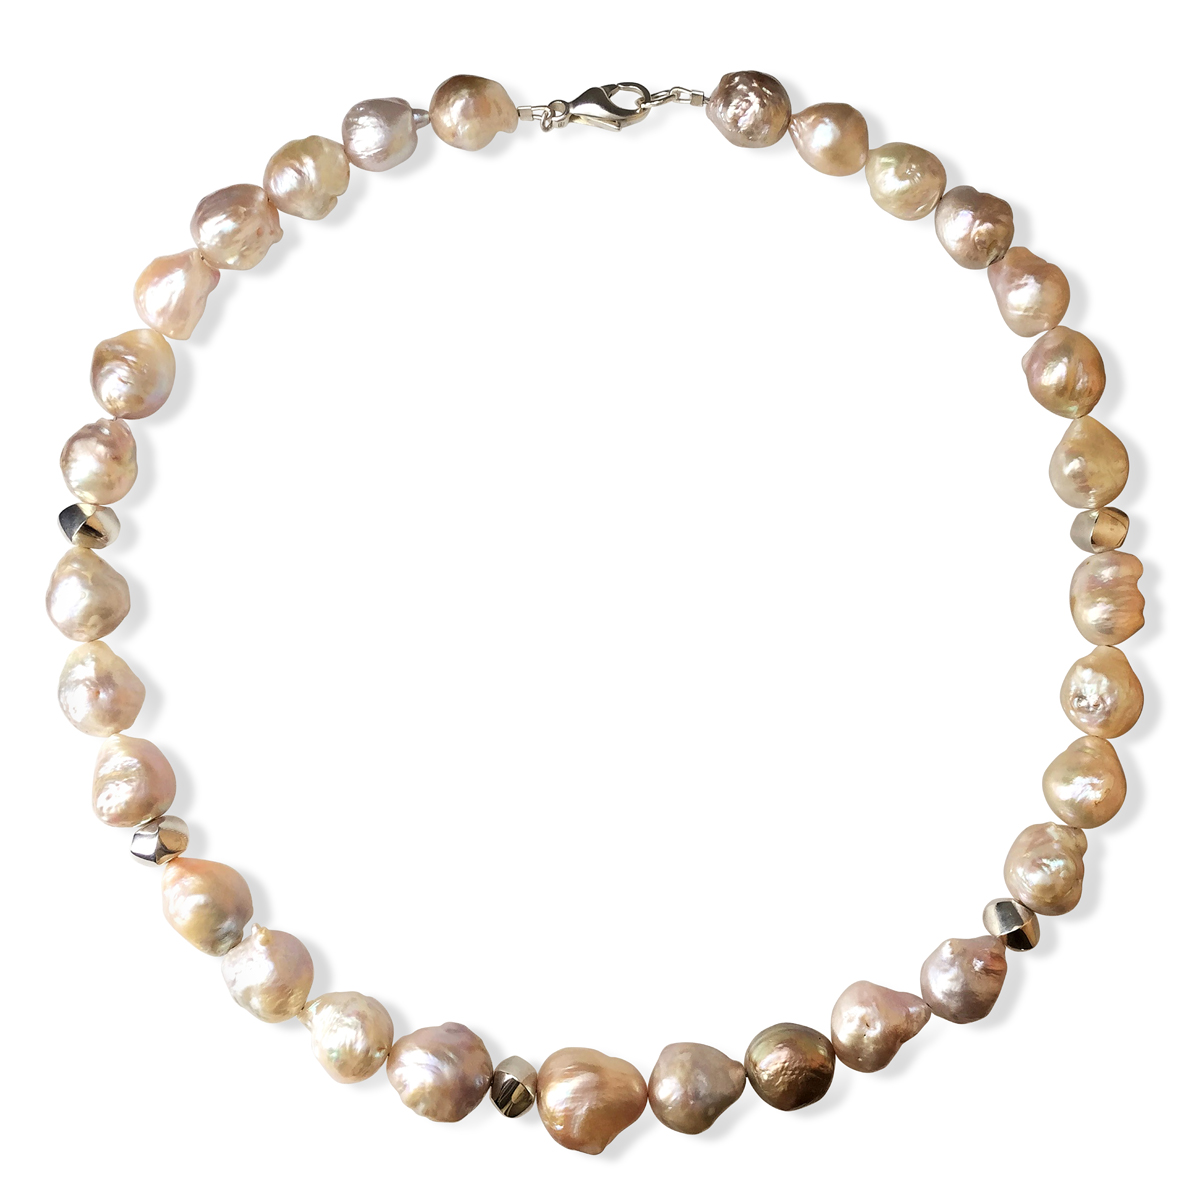 River pearl silver spiral necklace